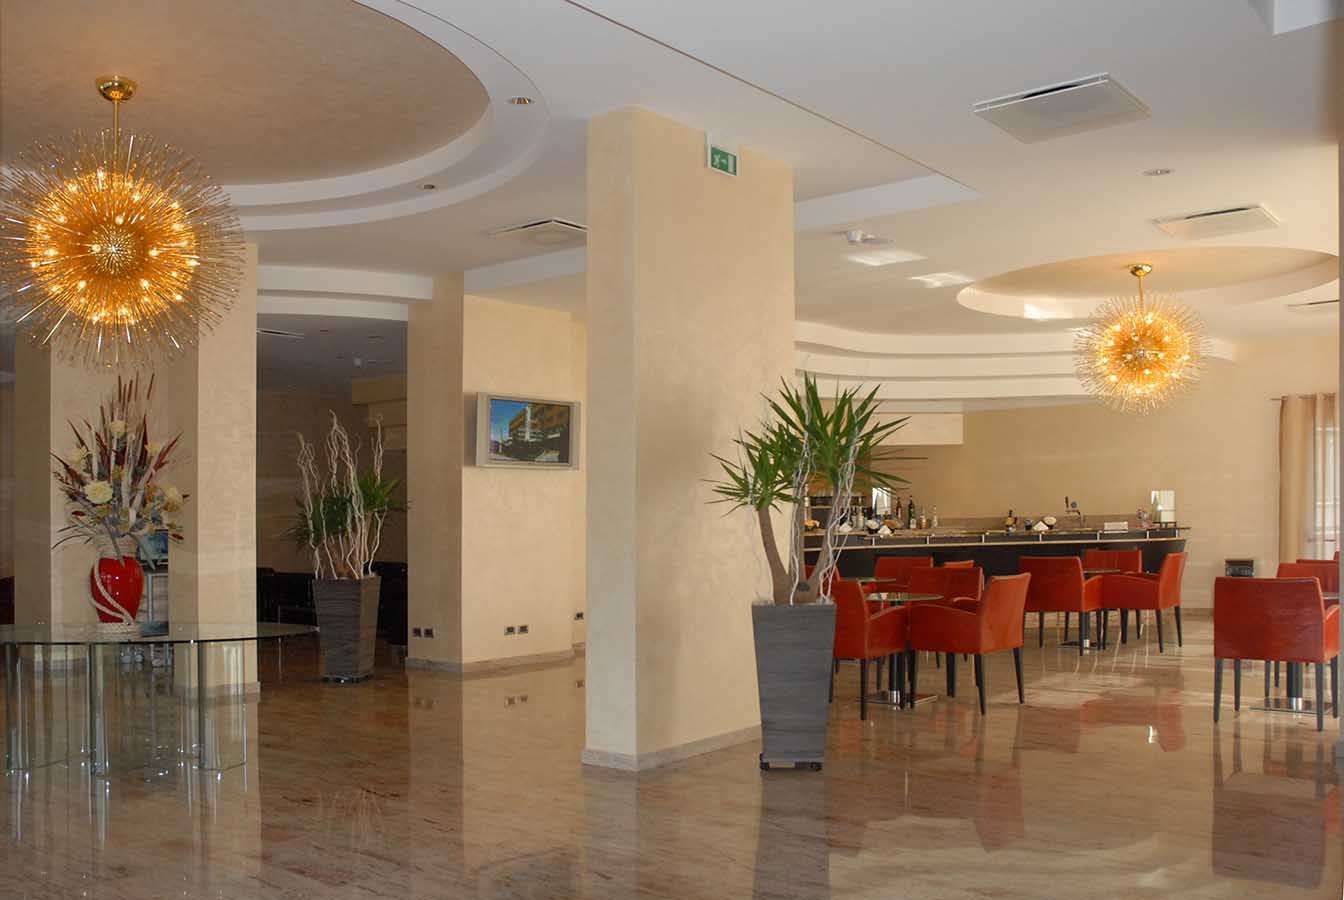 Forl� - Hotel San Giorgio, Sure Hotel Collection by Best Western